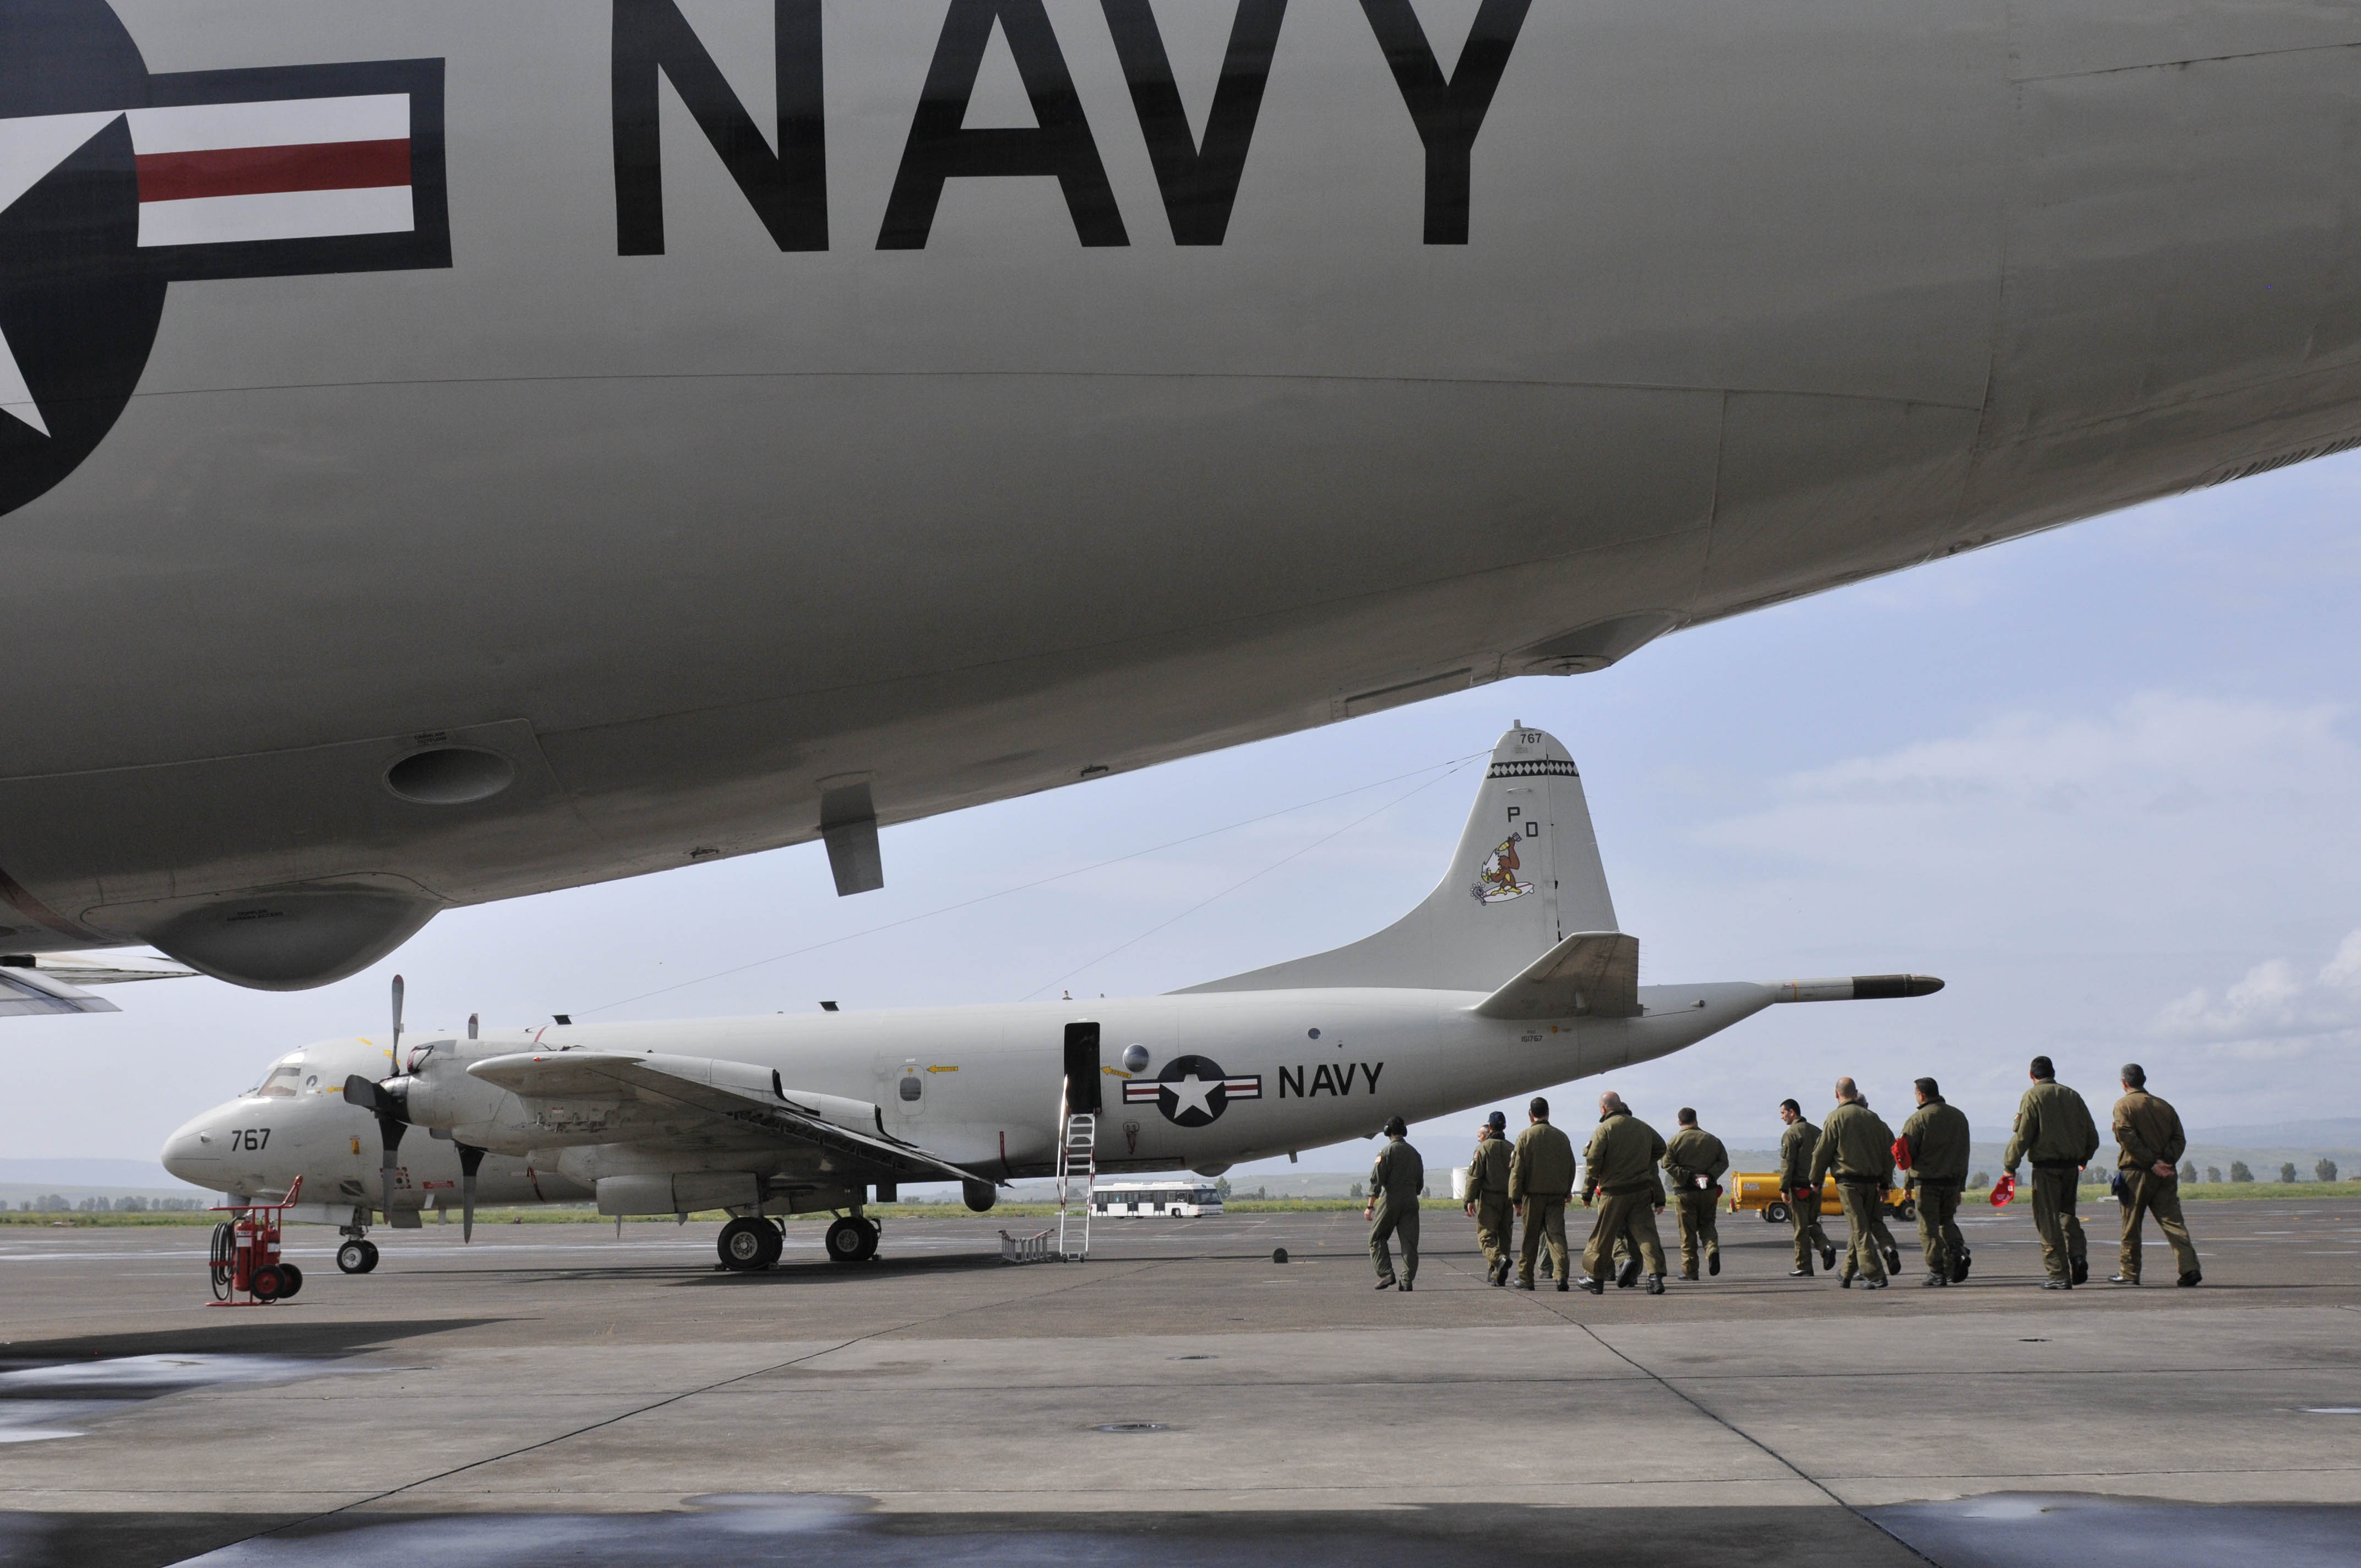 Italian officers from Naval Air Station Sigonella prepare to board a P-3C Orion maritime patrol aircraft on April, 22, 2014. US Navy Photo